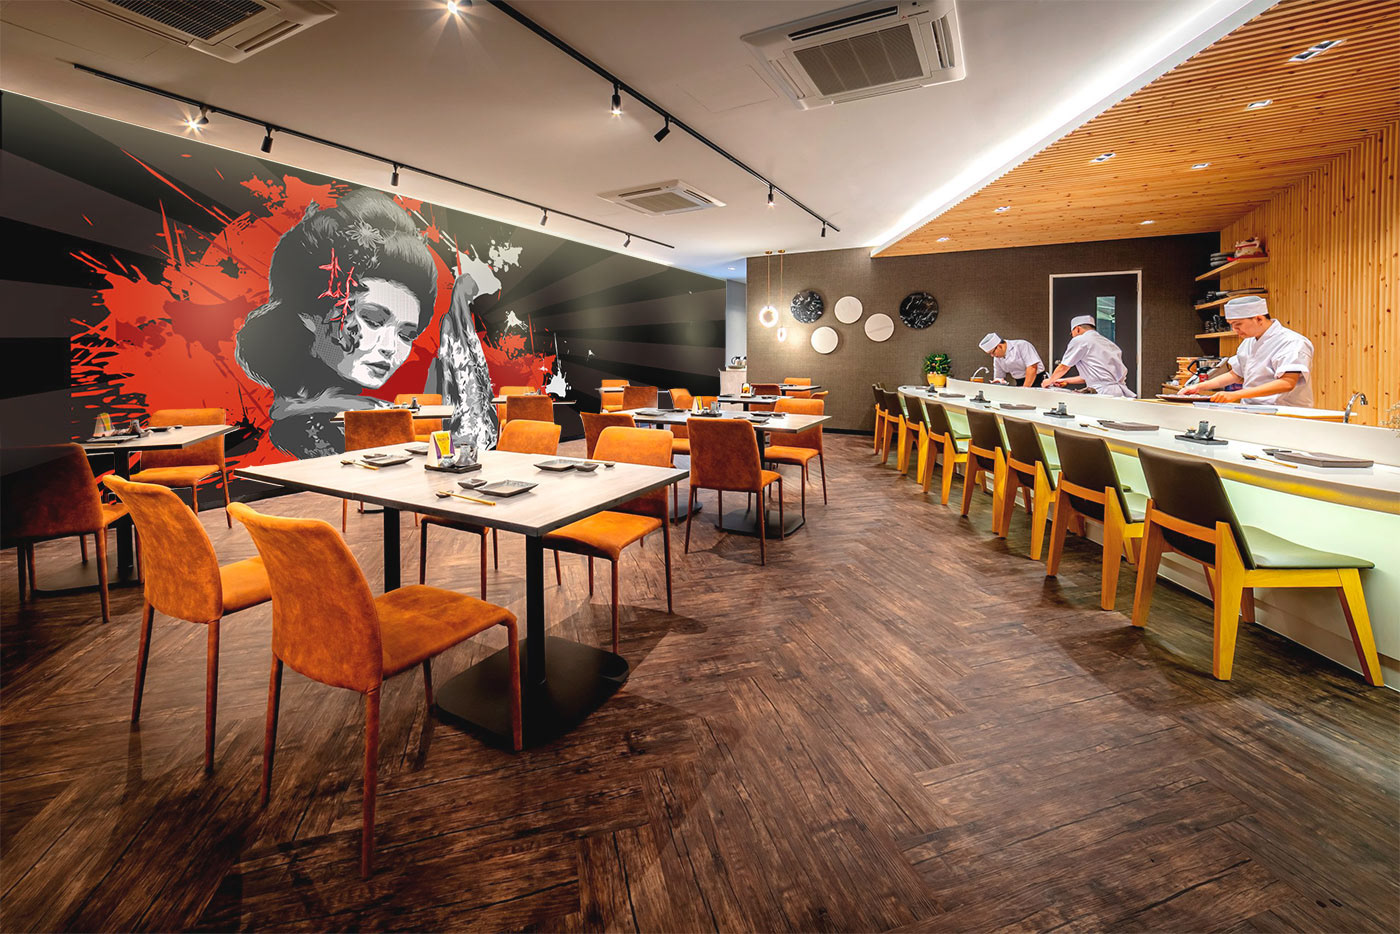 interior of sushi restaurant with a geisha graffiti on the wall